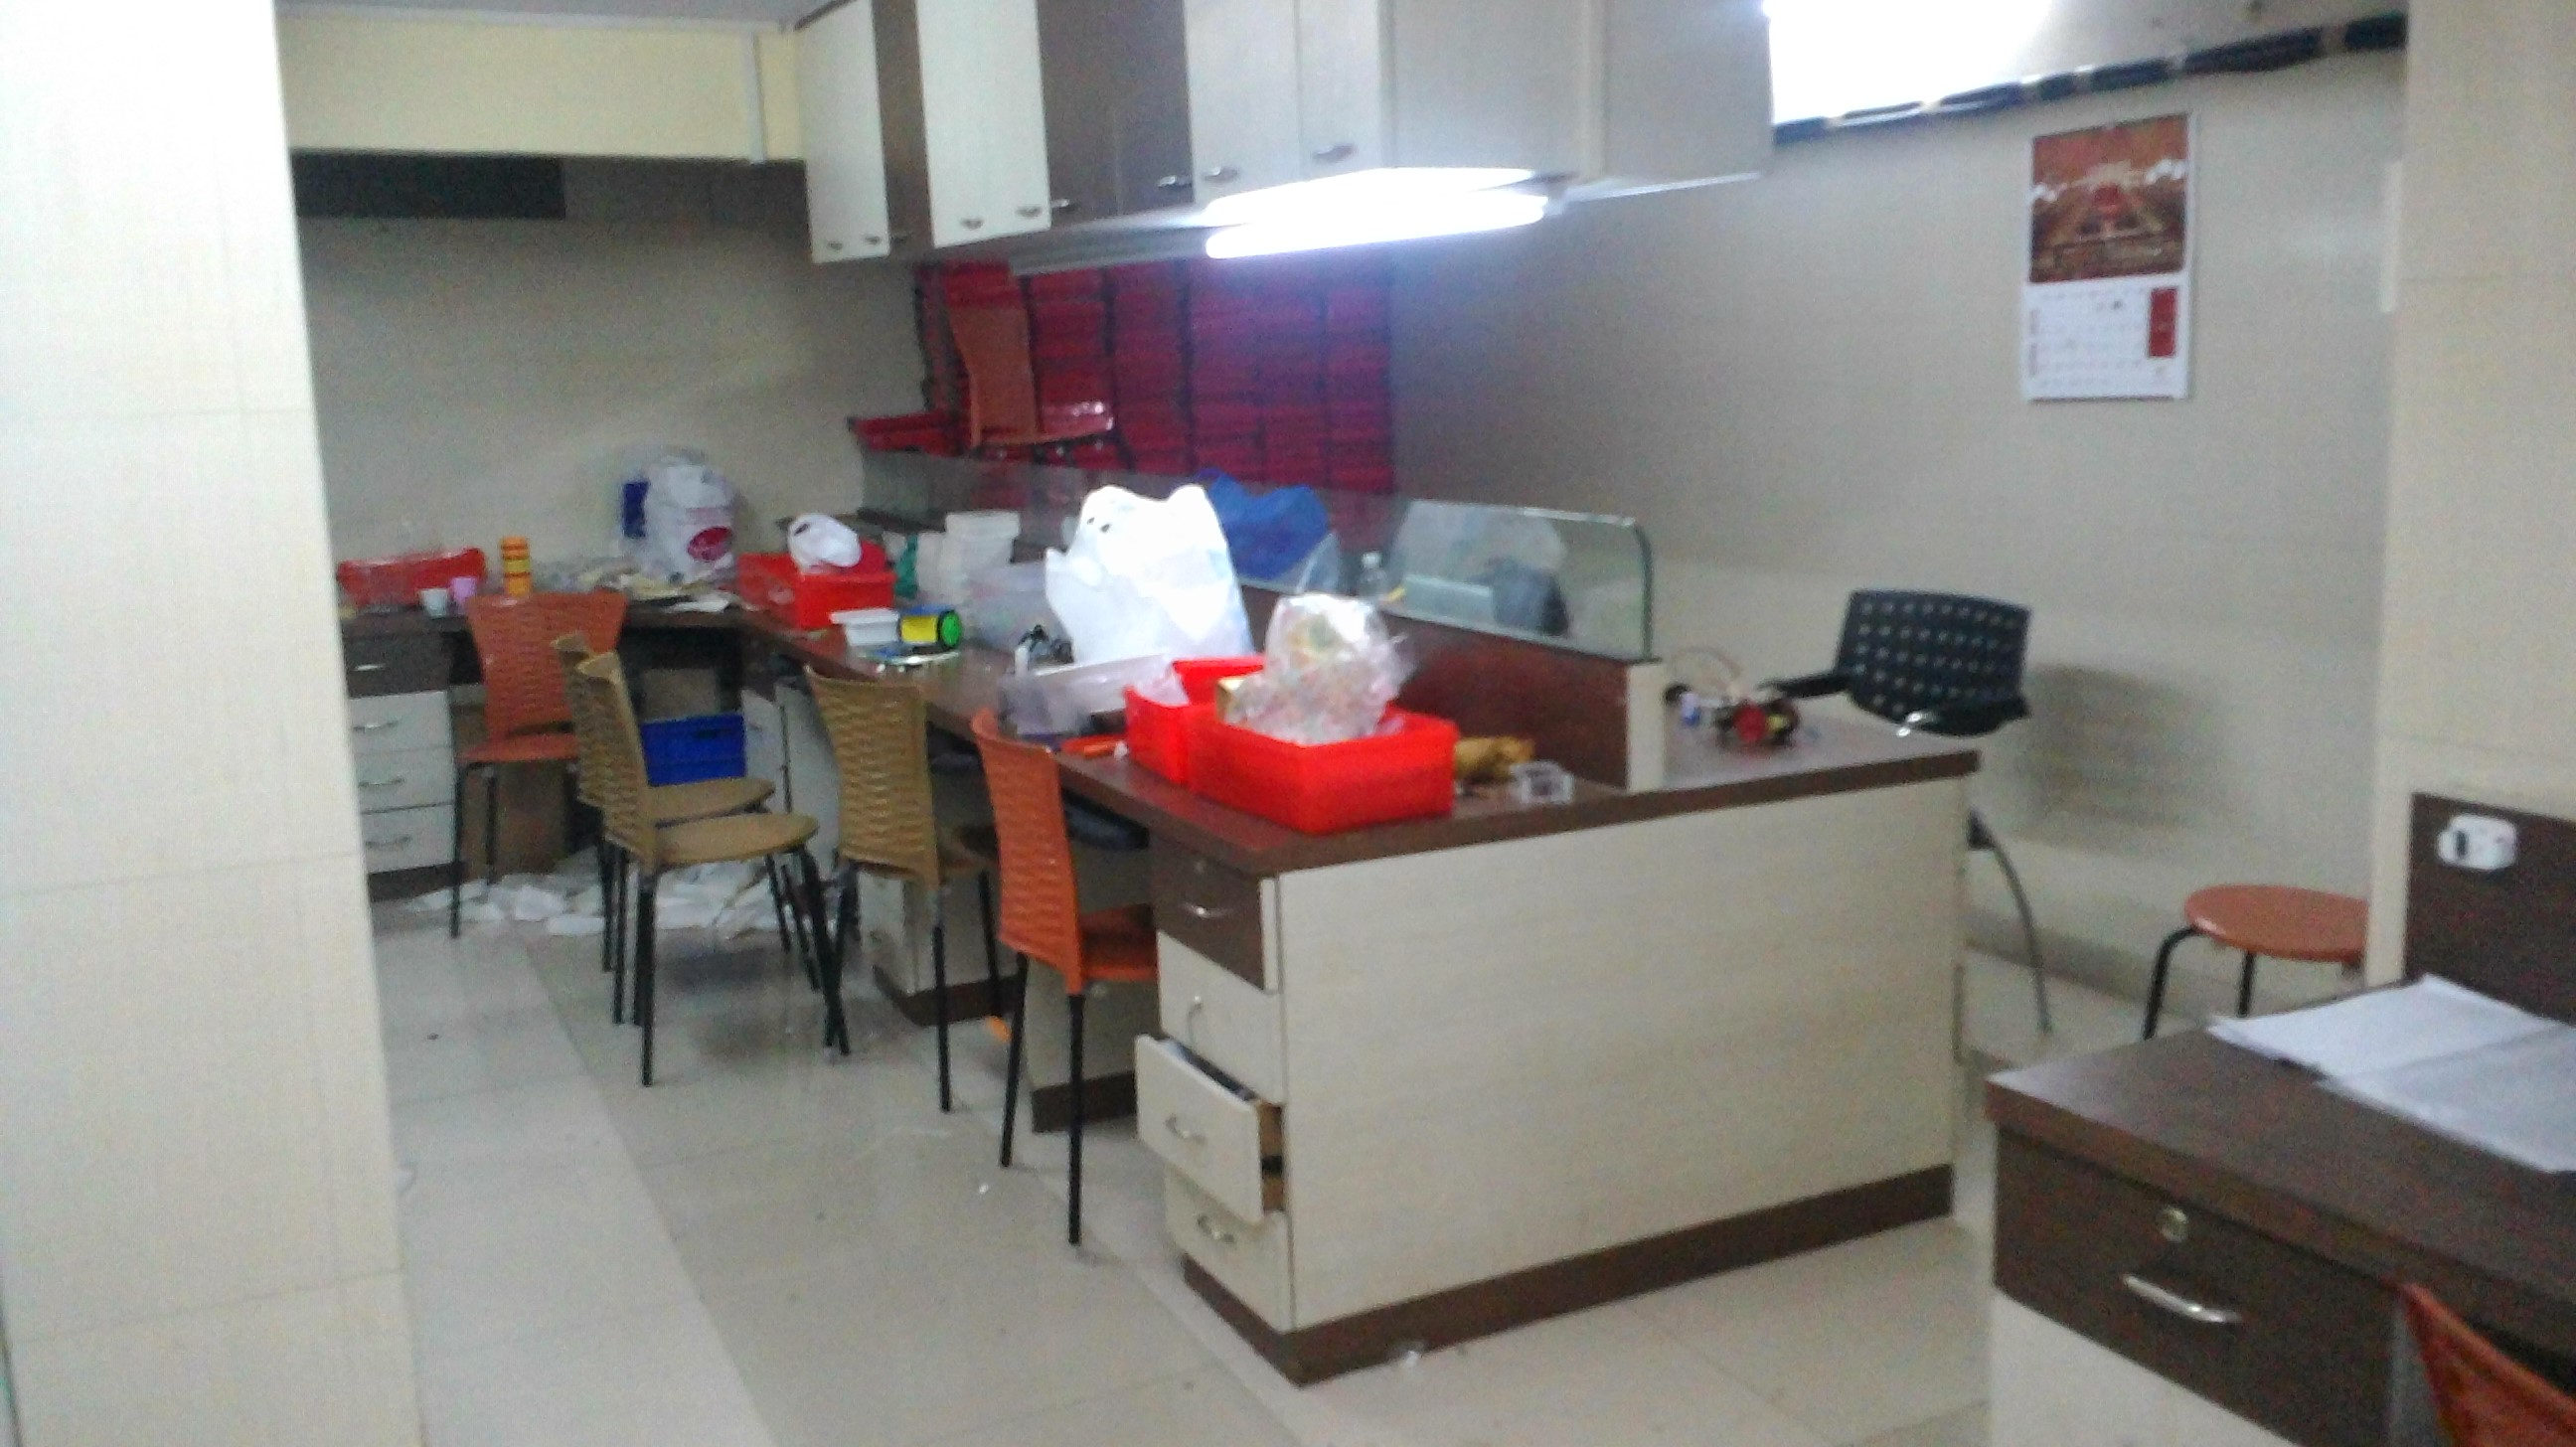 76 Station Near Me >> Commercial Office Space Property for Rent in Fully Furnished office for Rent, Near Bedekar ...